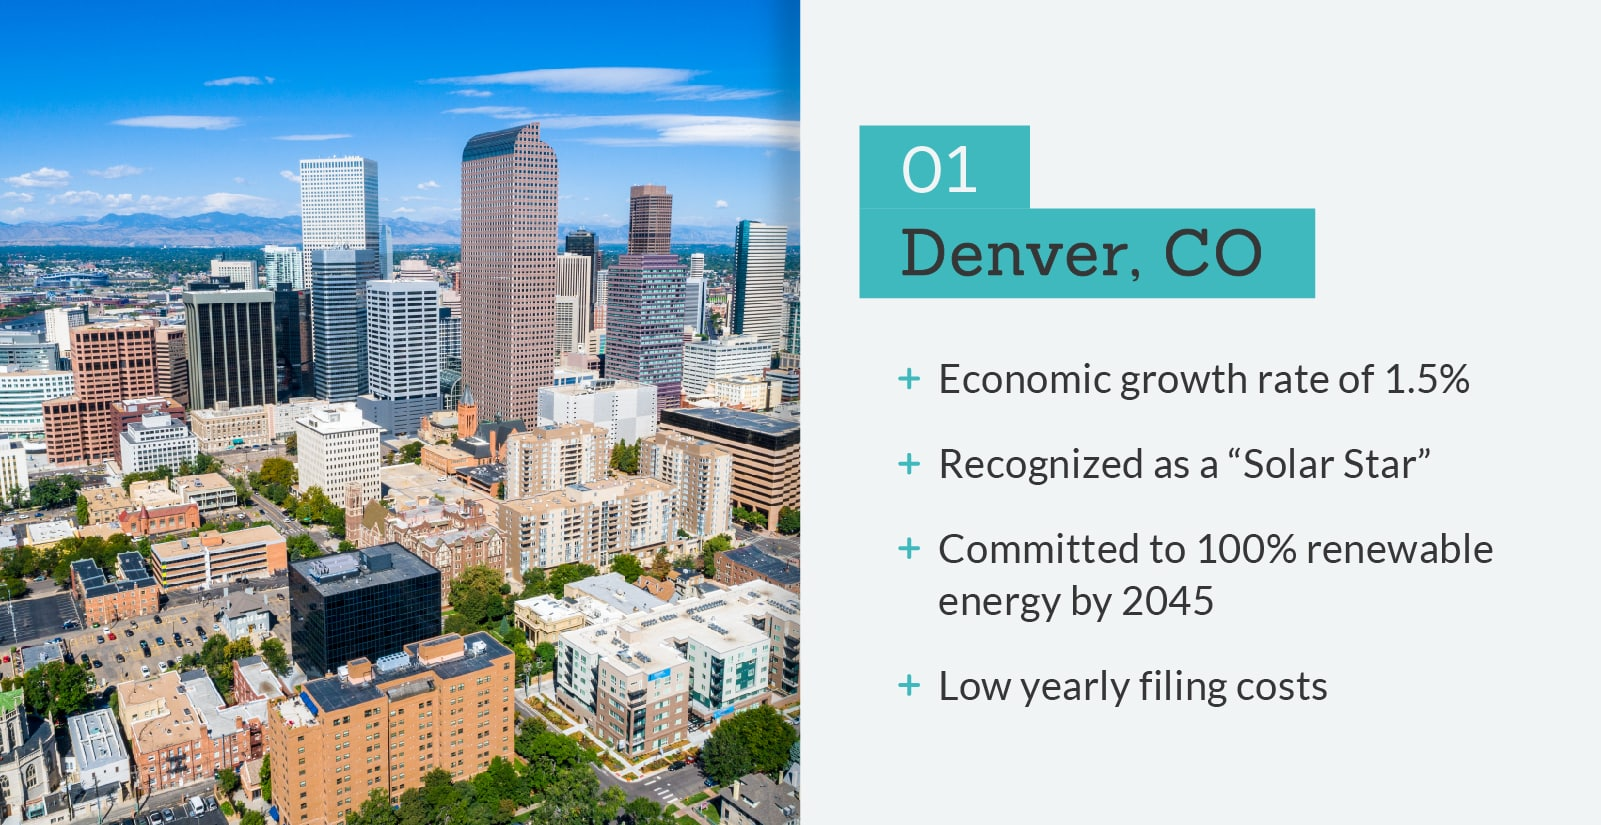 picture of Denver with statistics.